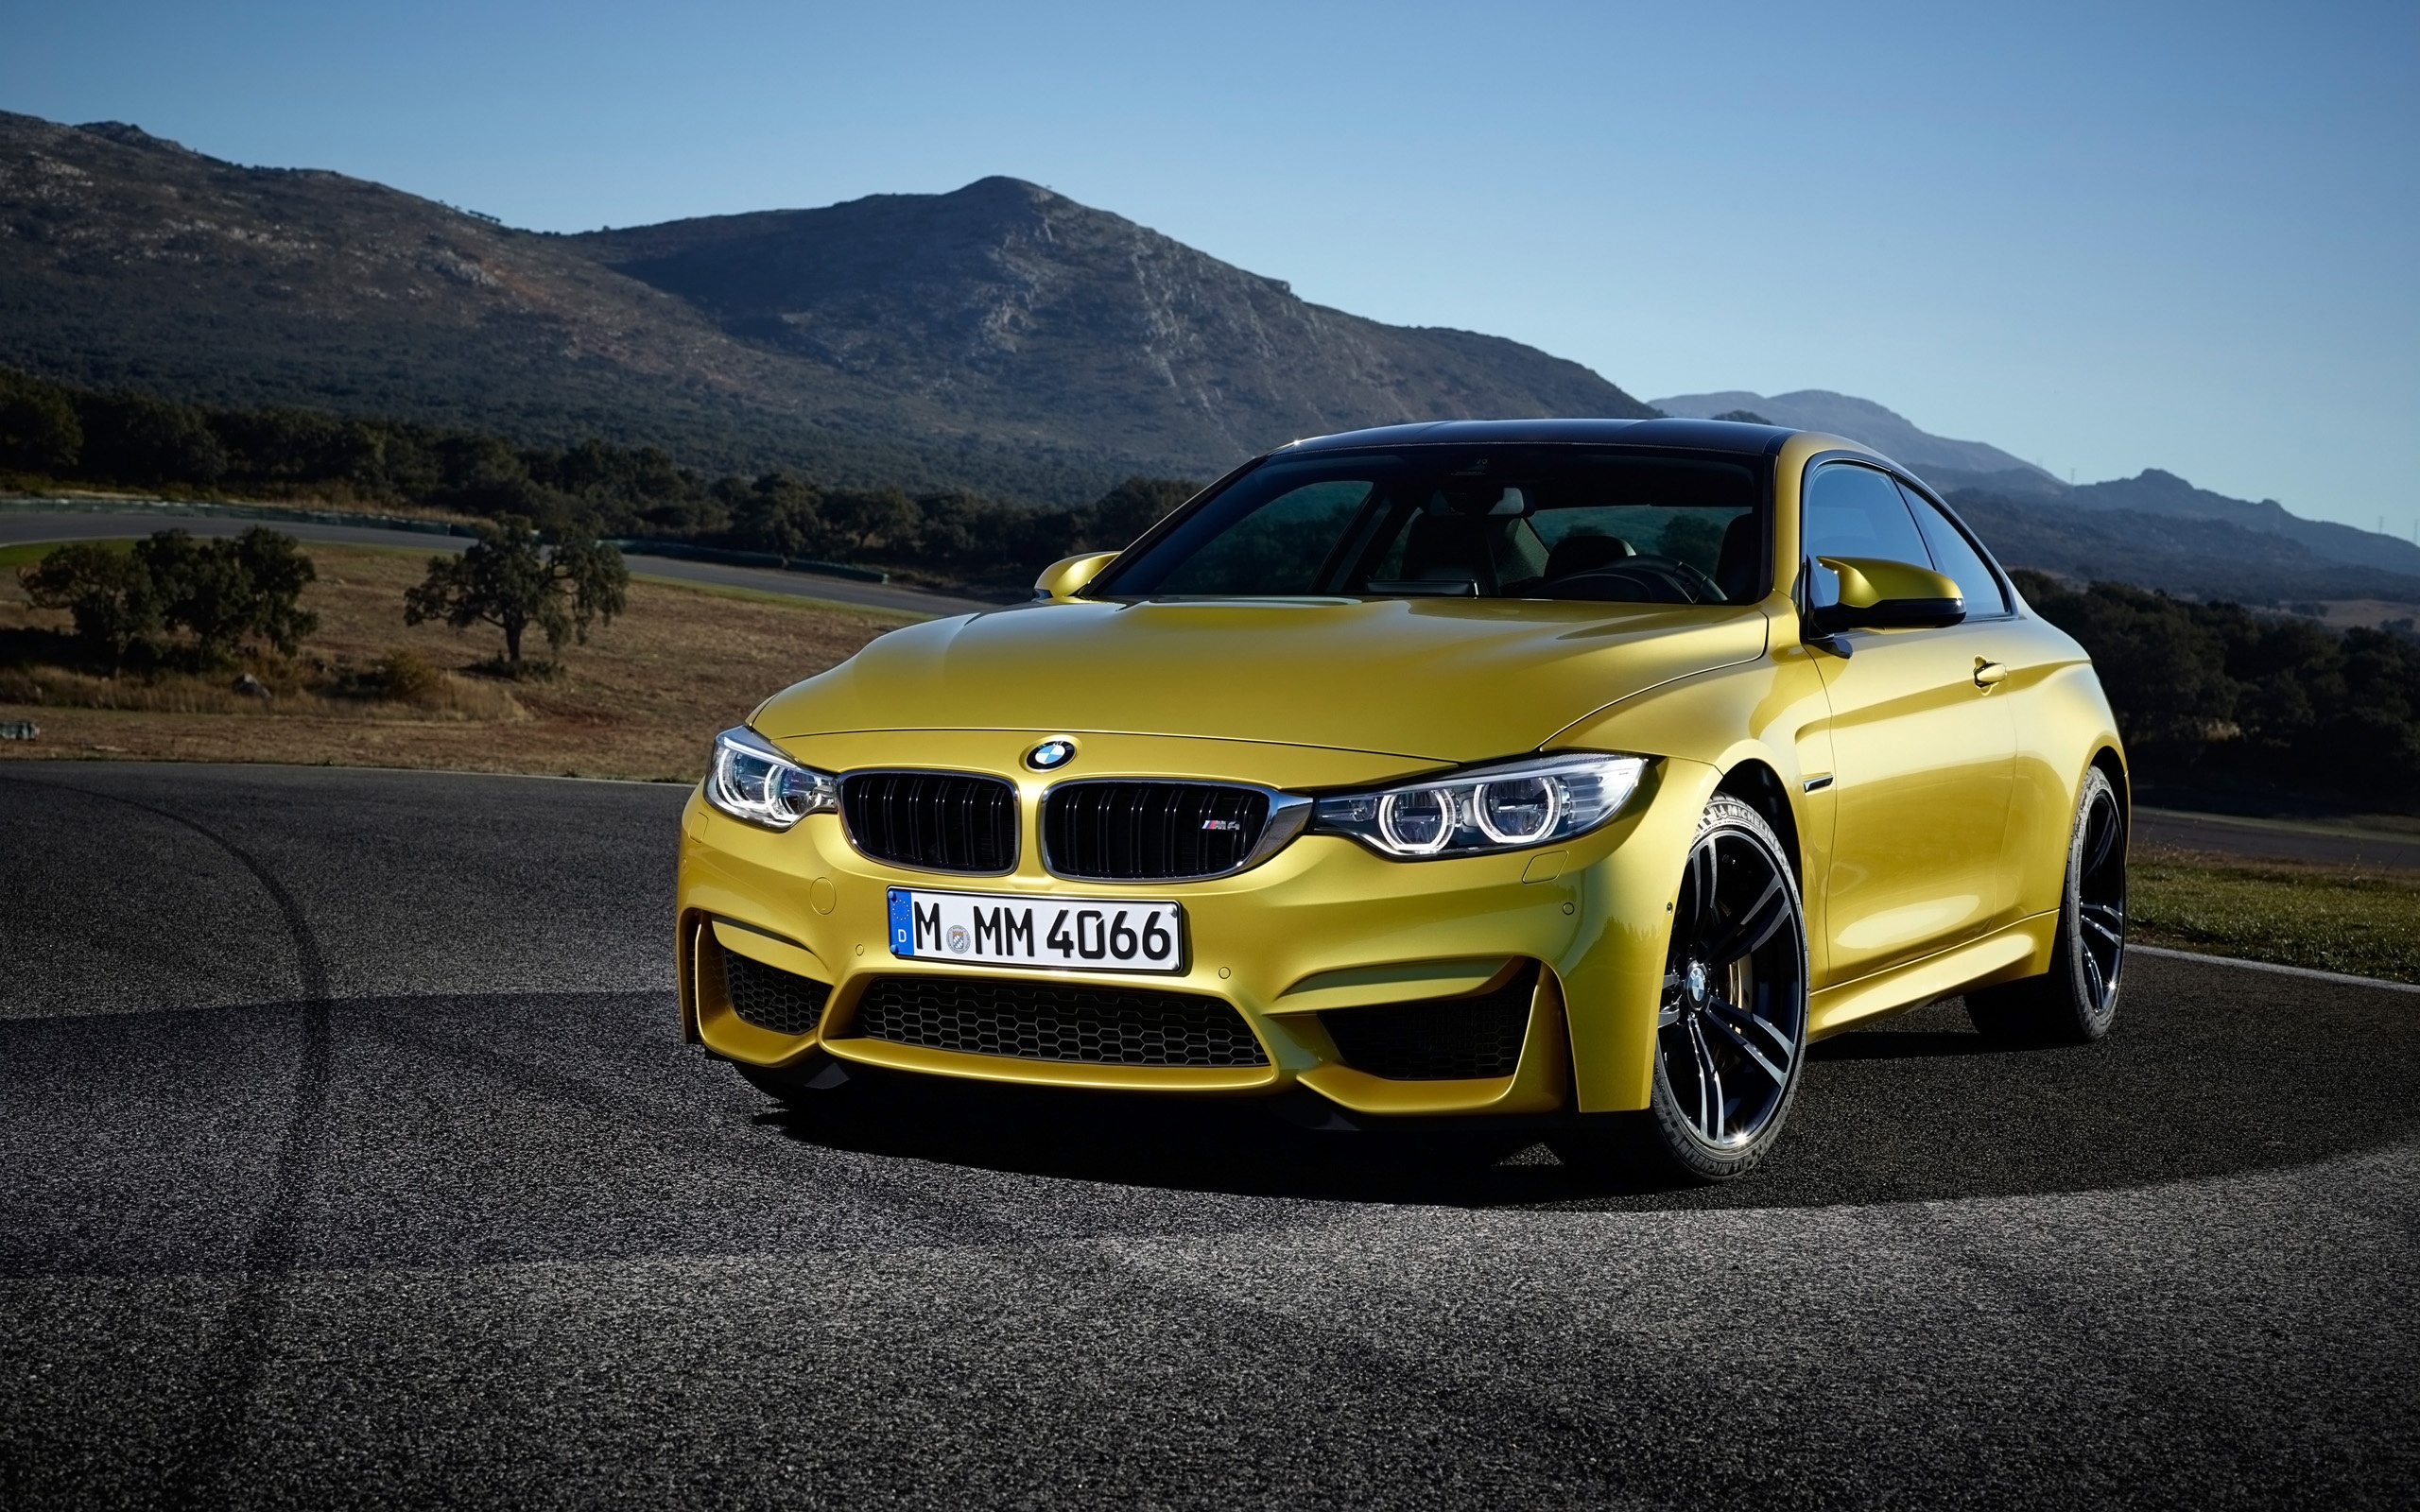 2014 BMW M4 Coupe Wallpaper HD Car Wallpapers 2560x1600